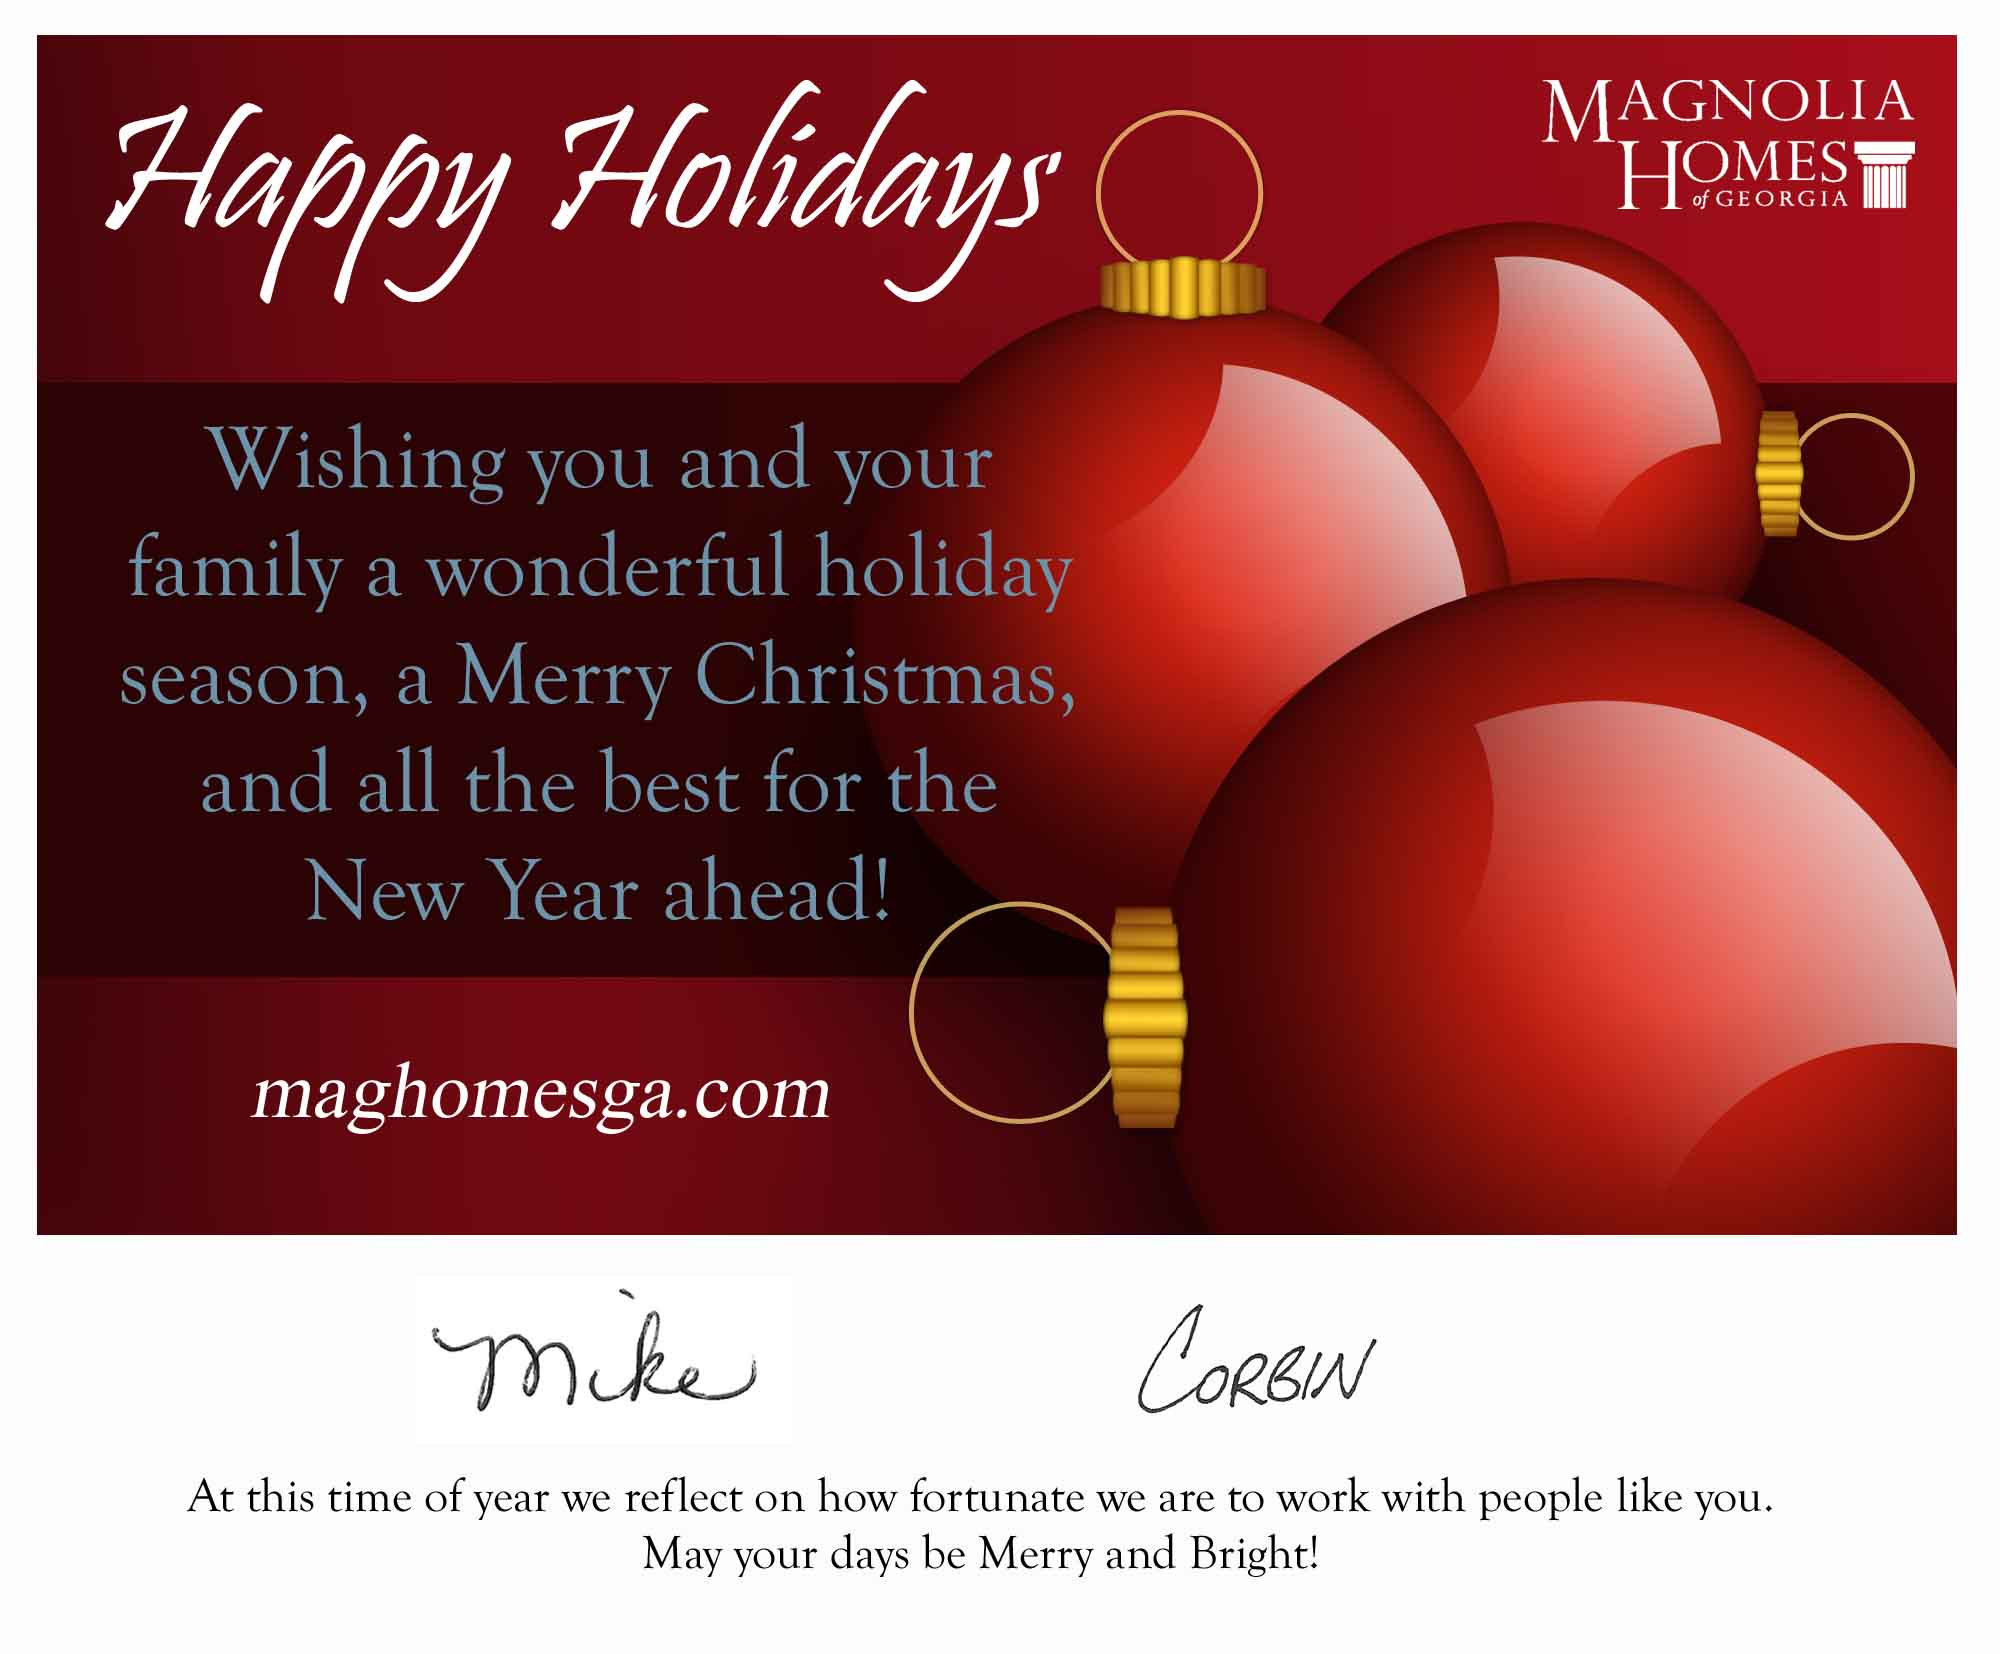 Holiday greetings from magnolia homes of georgia magnolia homes of this m4hsunfo